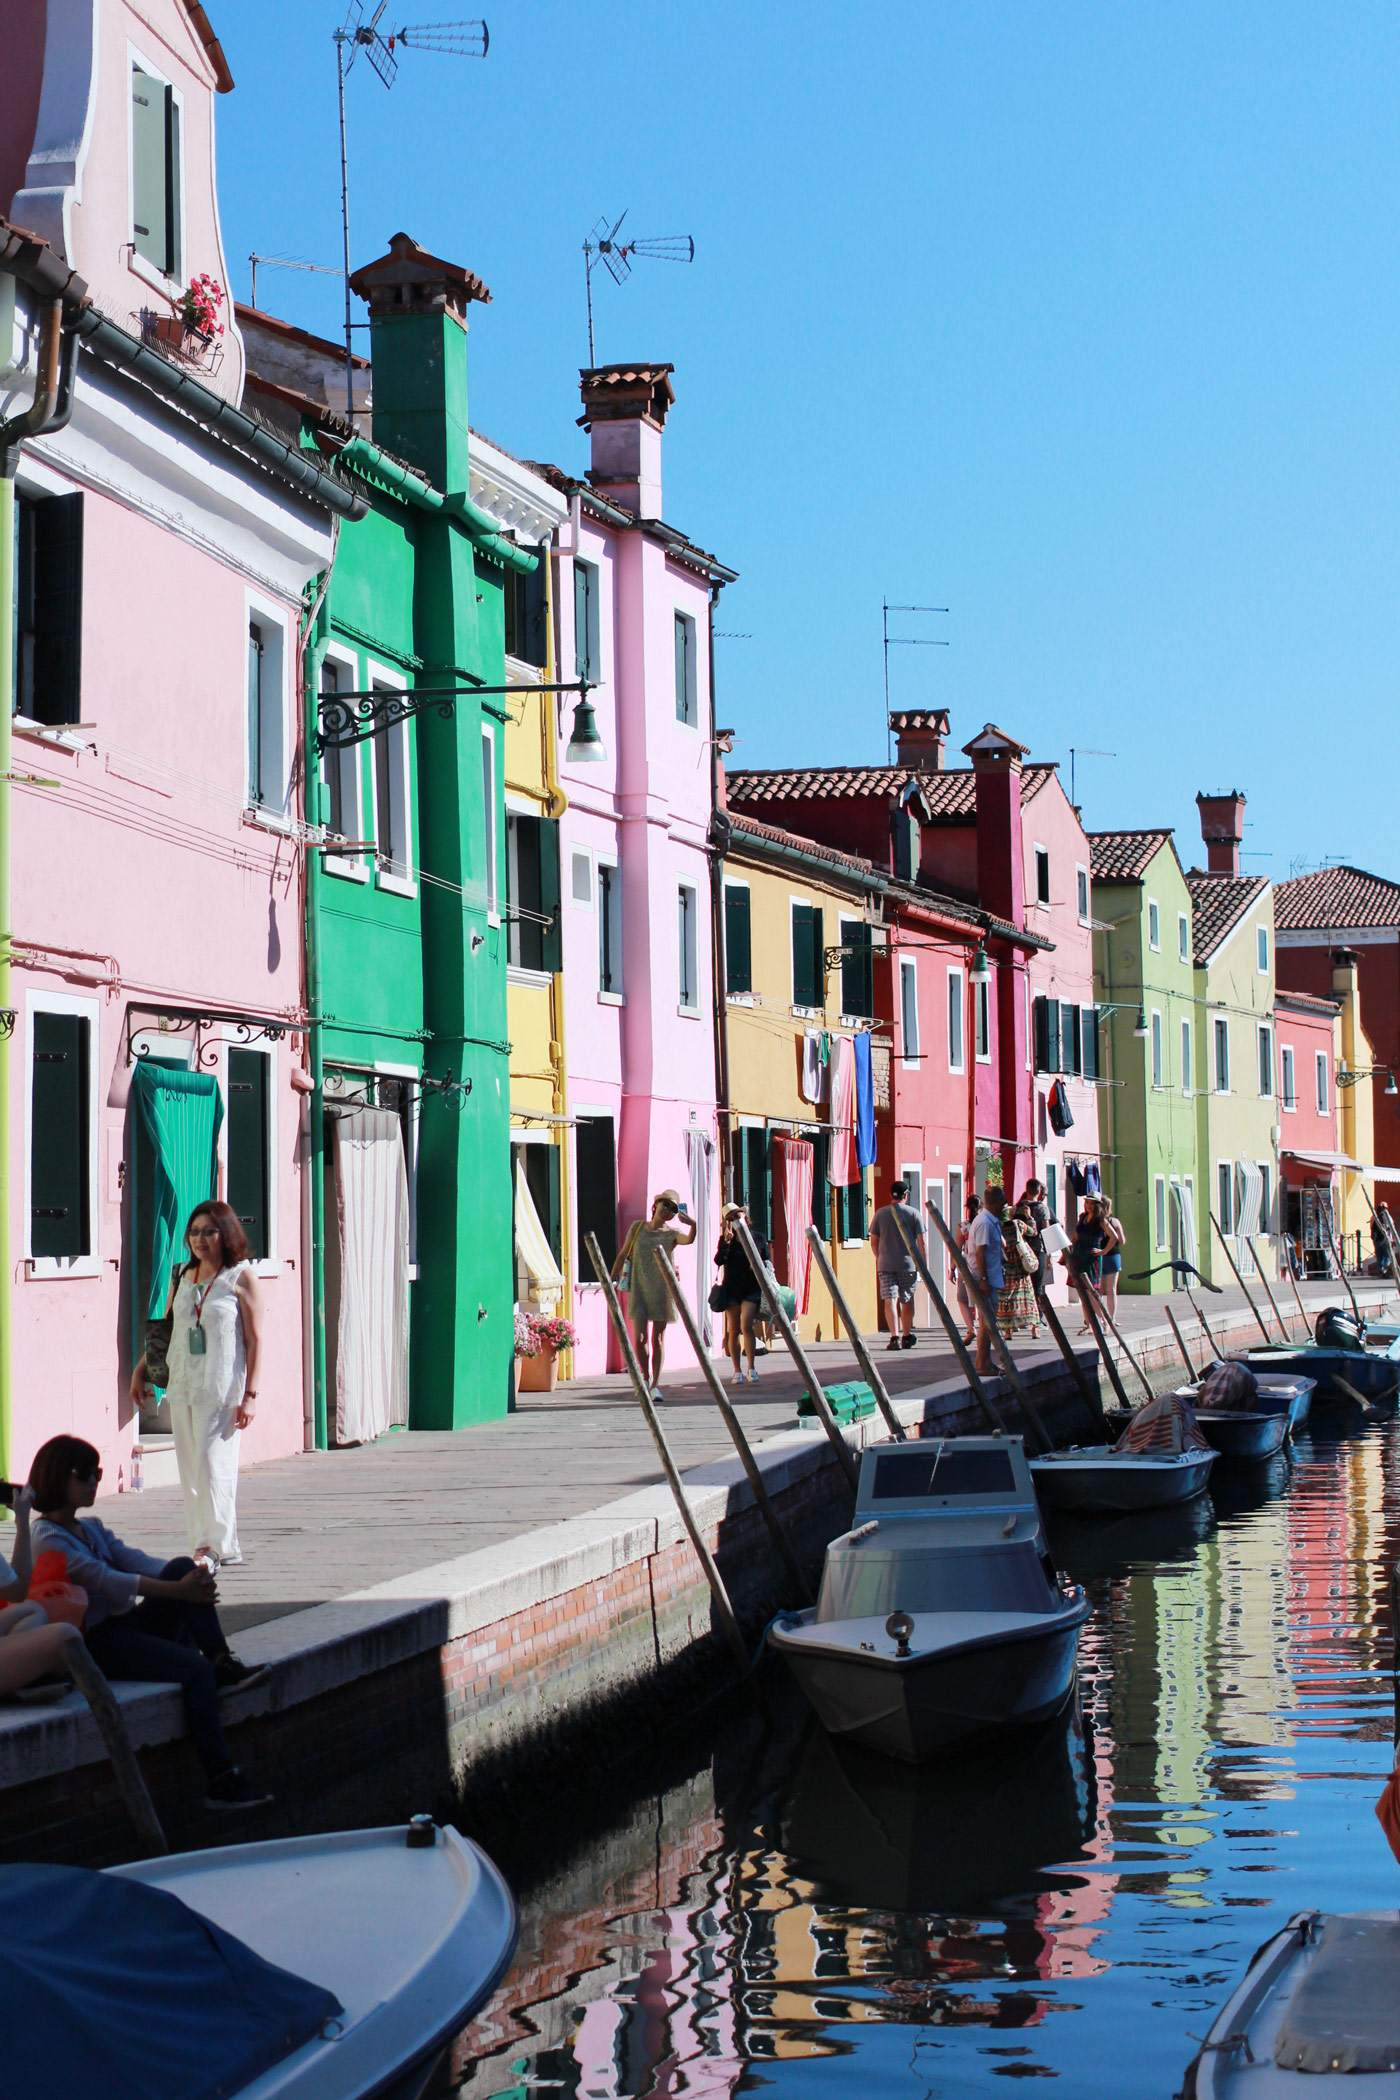 venice-italy-burano-island-venezia-travel-blogger-photography-1